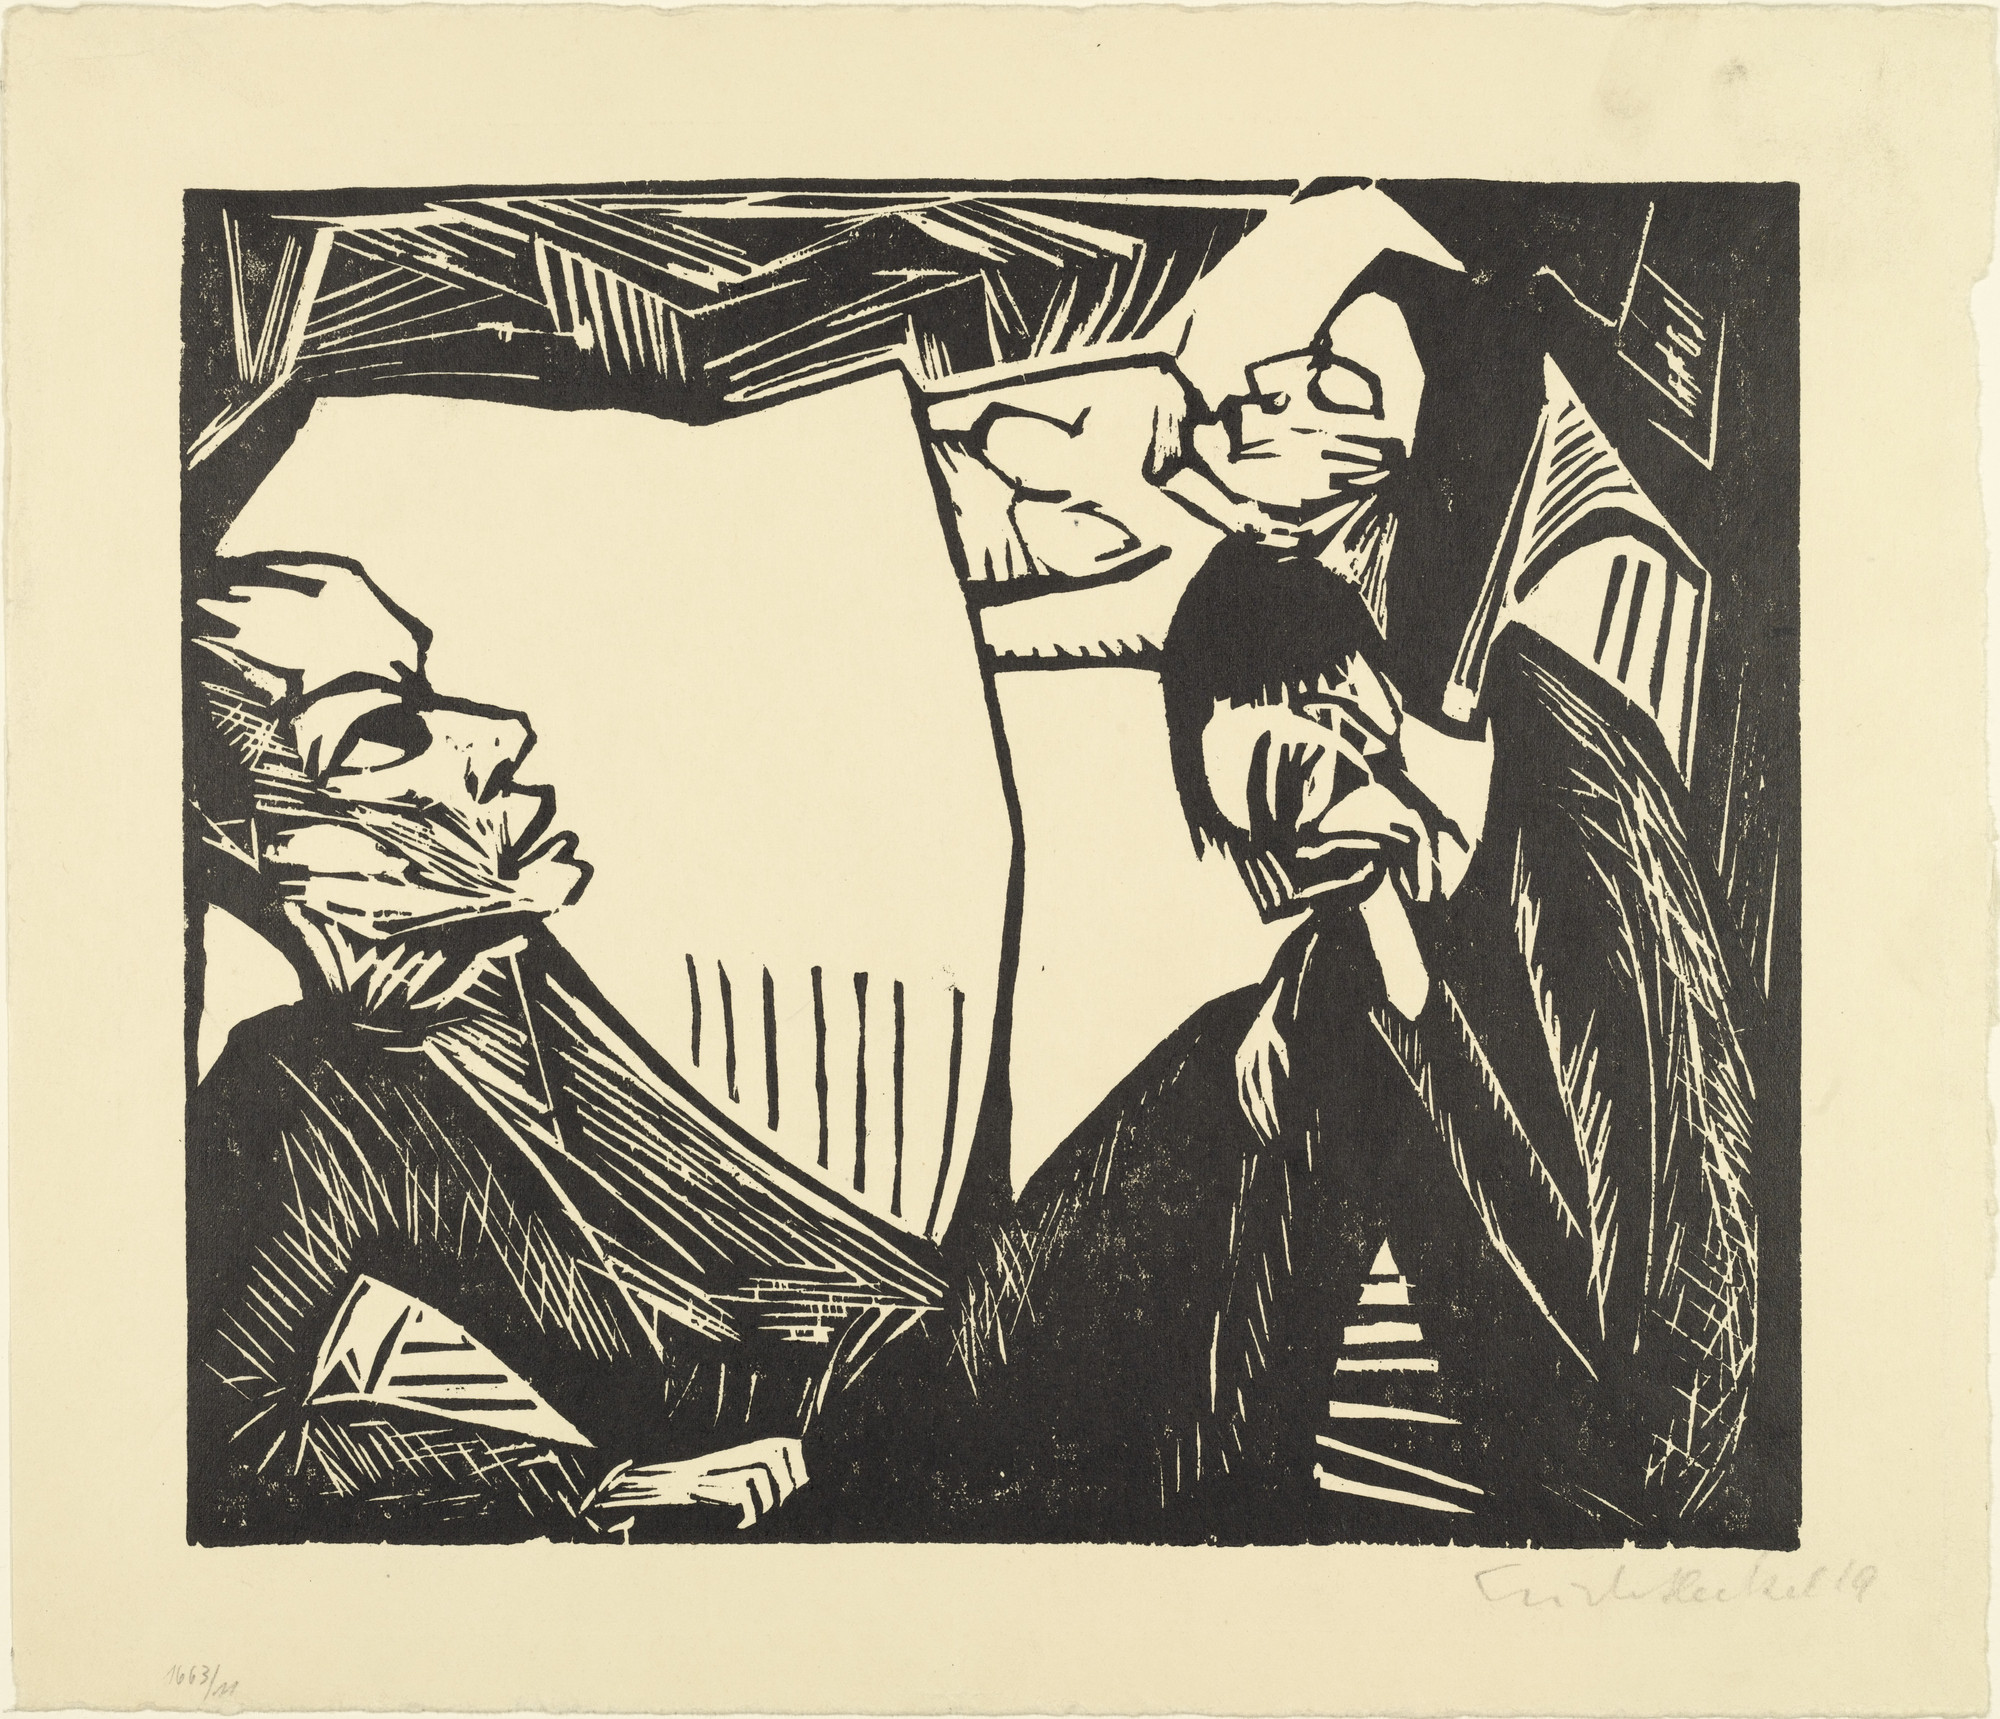 Erich Heckel. The Dead Woman (Die Tote) for the portfolio Die Schaffenden, 2, no. 2. (1912), dated 1919, (published 1920)